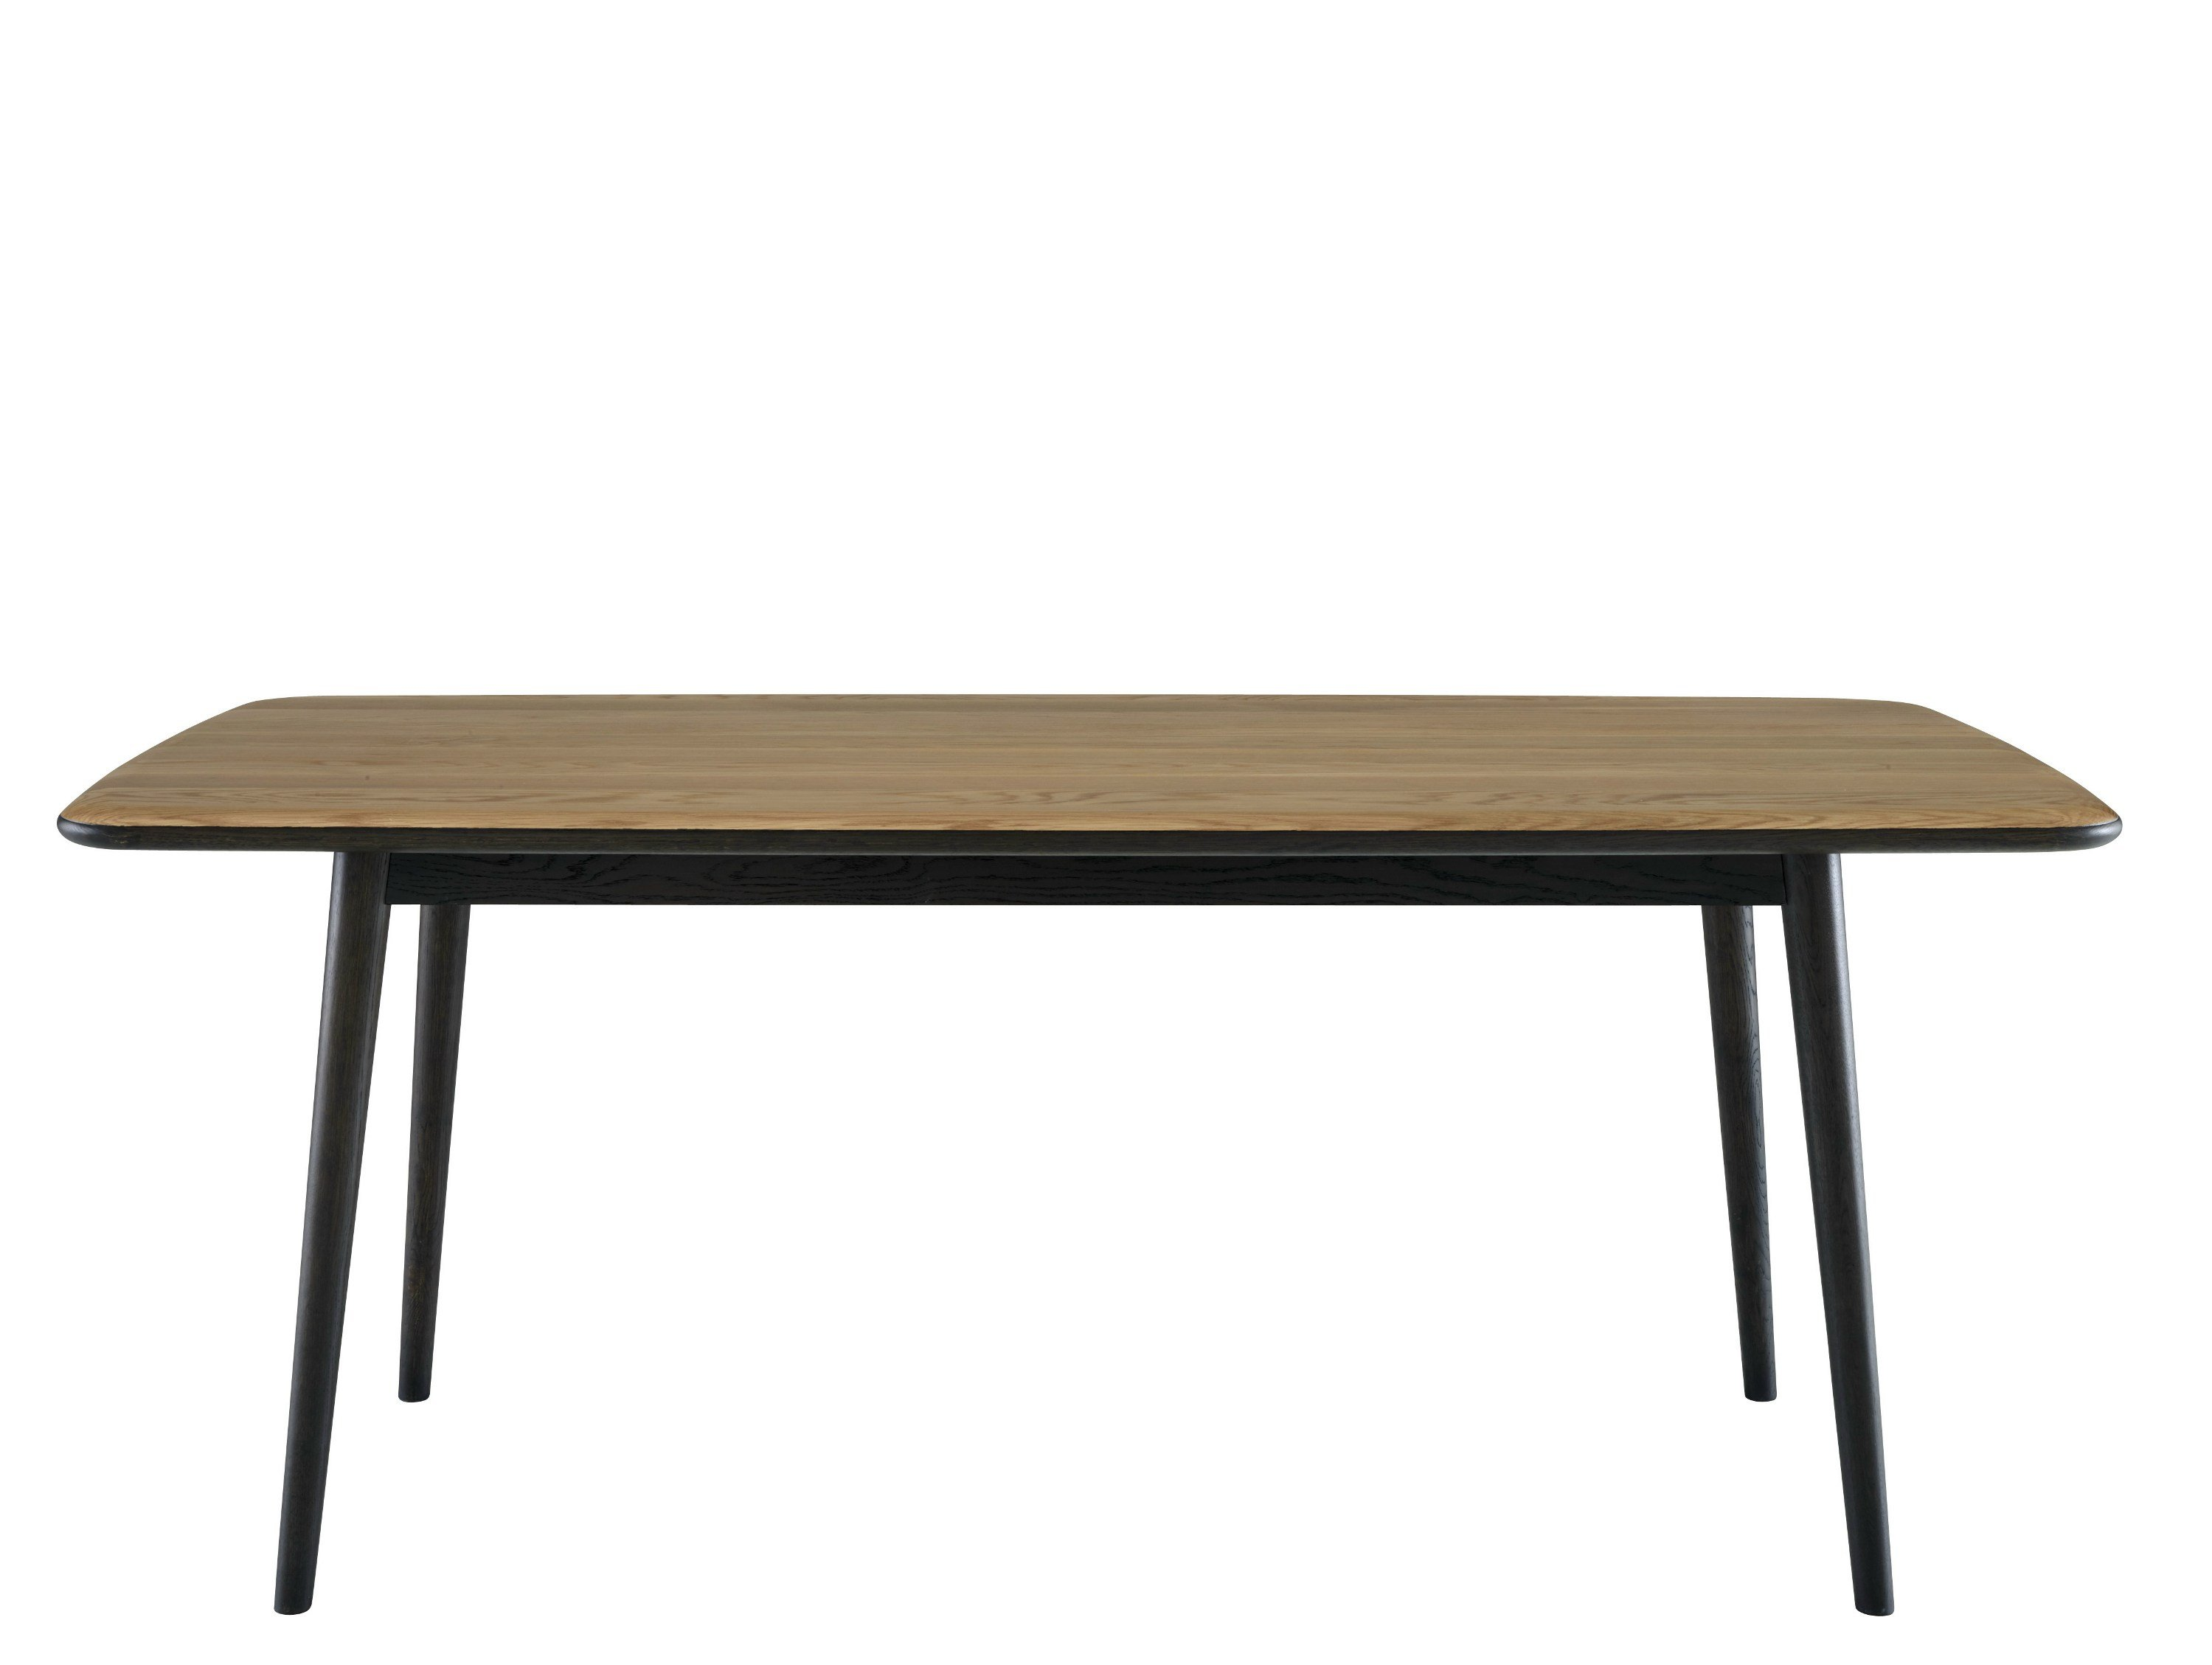 Lady carlotta table by roset italia design christian ghion - Ligne roset table basse ...